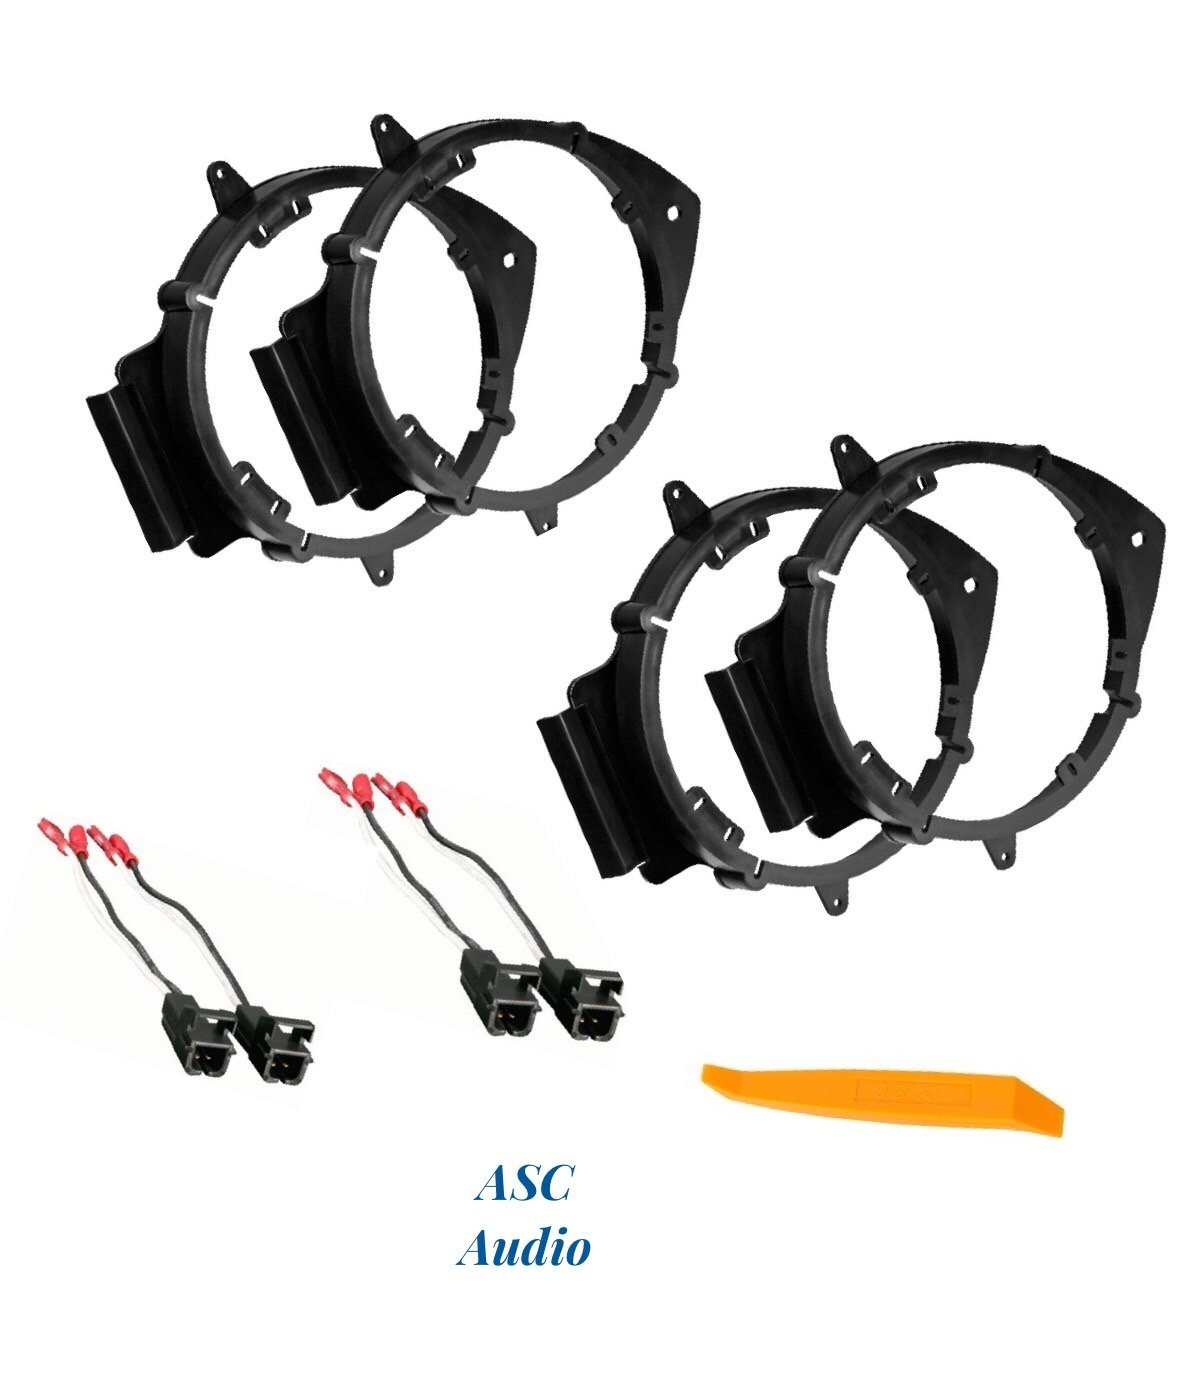 ASC 2 Pair 6+-Inch 6'' 6.5'' 6.75'' Car Speaker Install Adapter Mount Bracket Plates w'Speaker Wire Connectors for Select GM GMC/Pontiac/Chevrolet Vehicles- see below for compatible vehicles